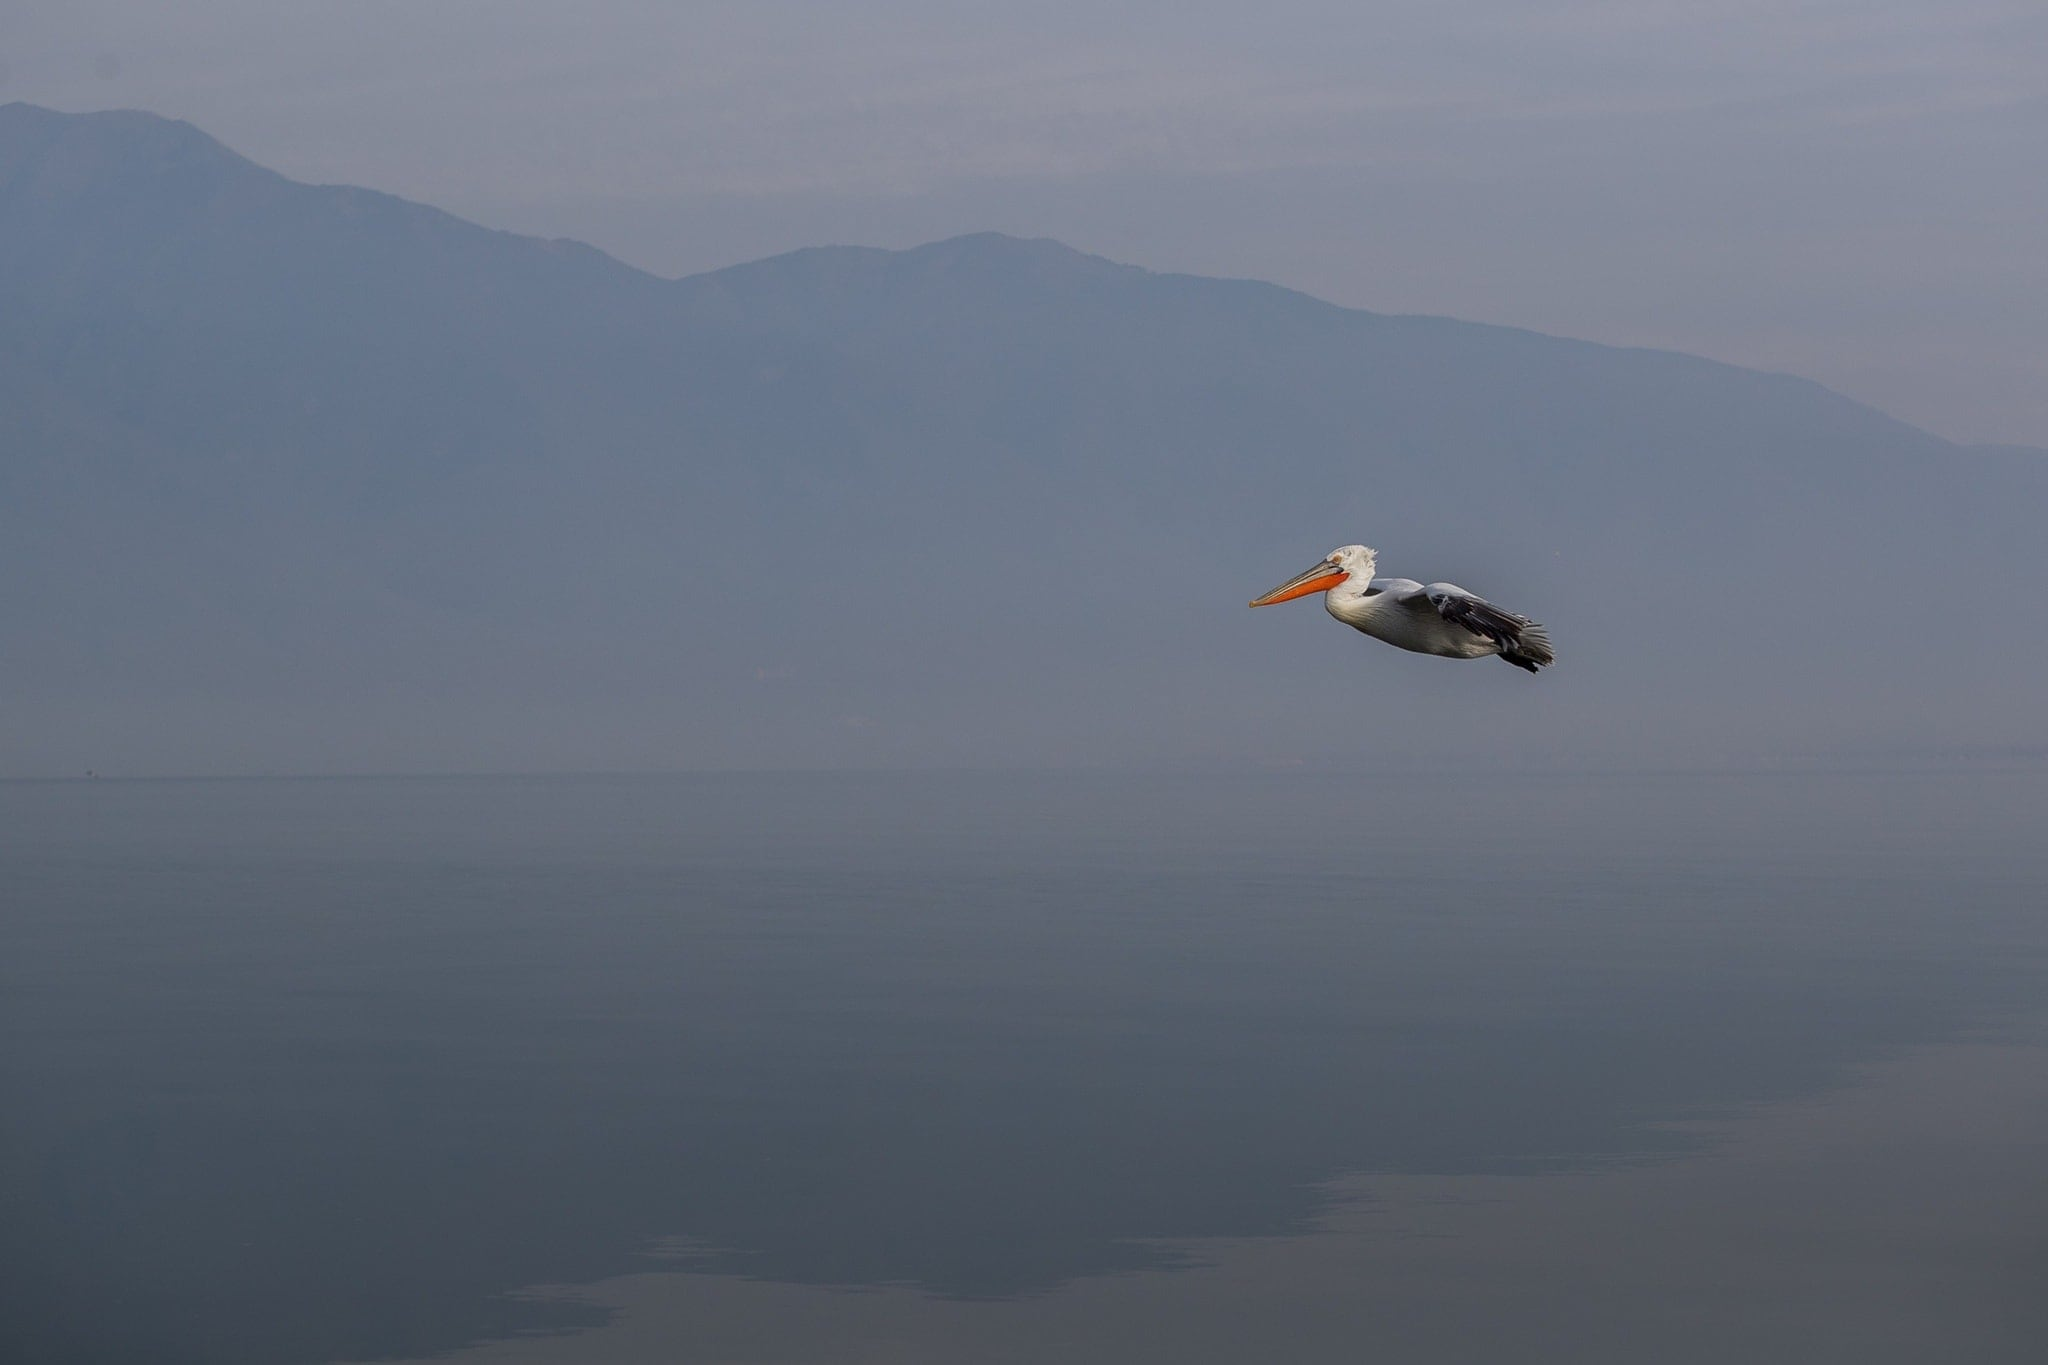 One Of The Dalmatian Pelicas Flies Above The Waters Of Lake Kerkini   Photographed During The NaturesLens Dalmatian Pelicans Of Greece Photography Holiday